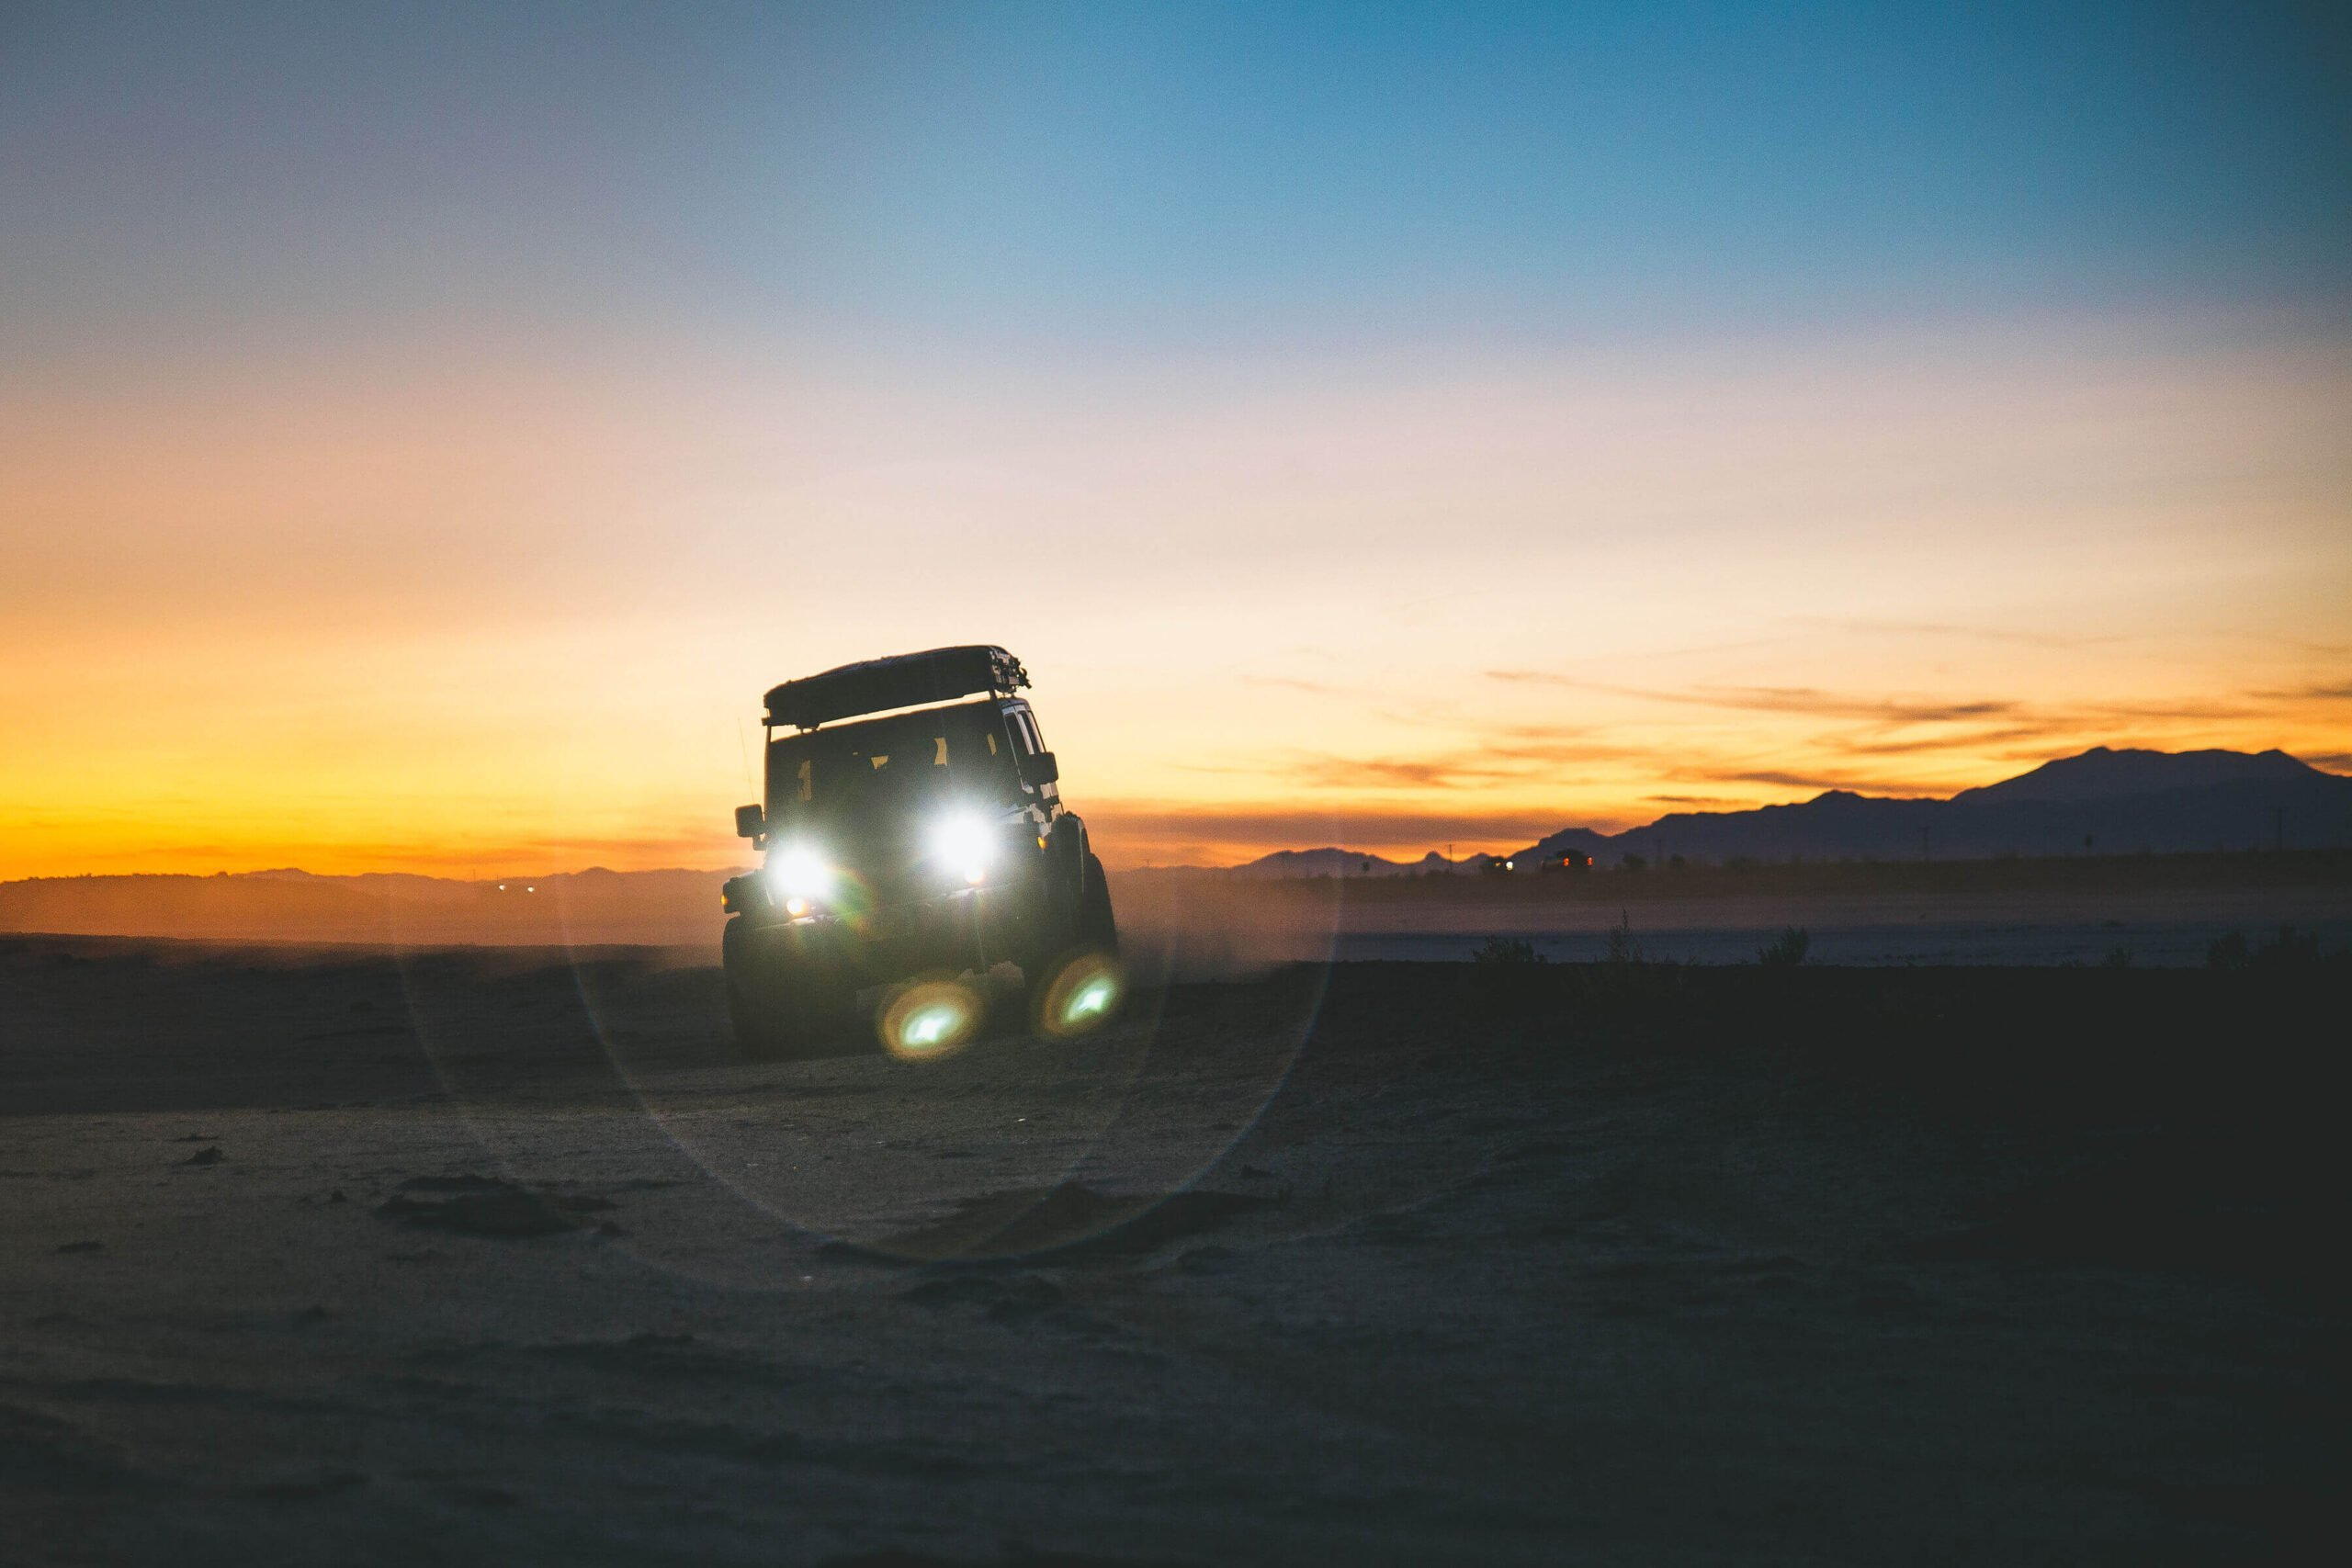 Jeep during sunset in desert